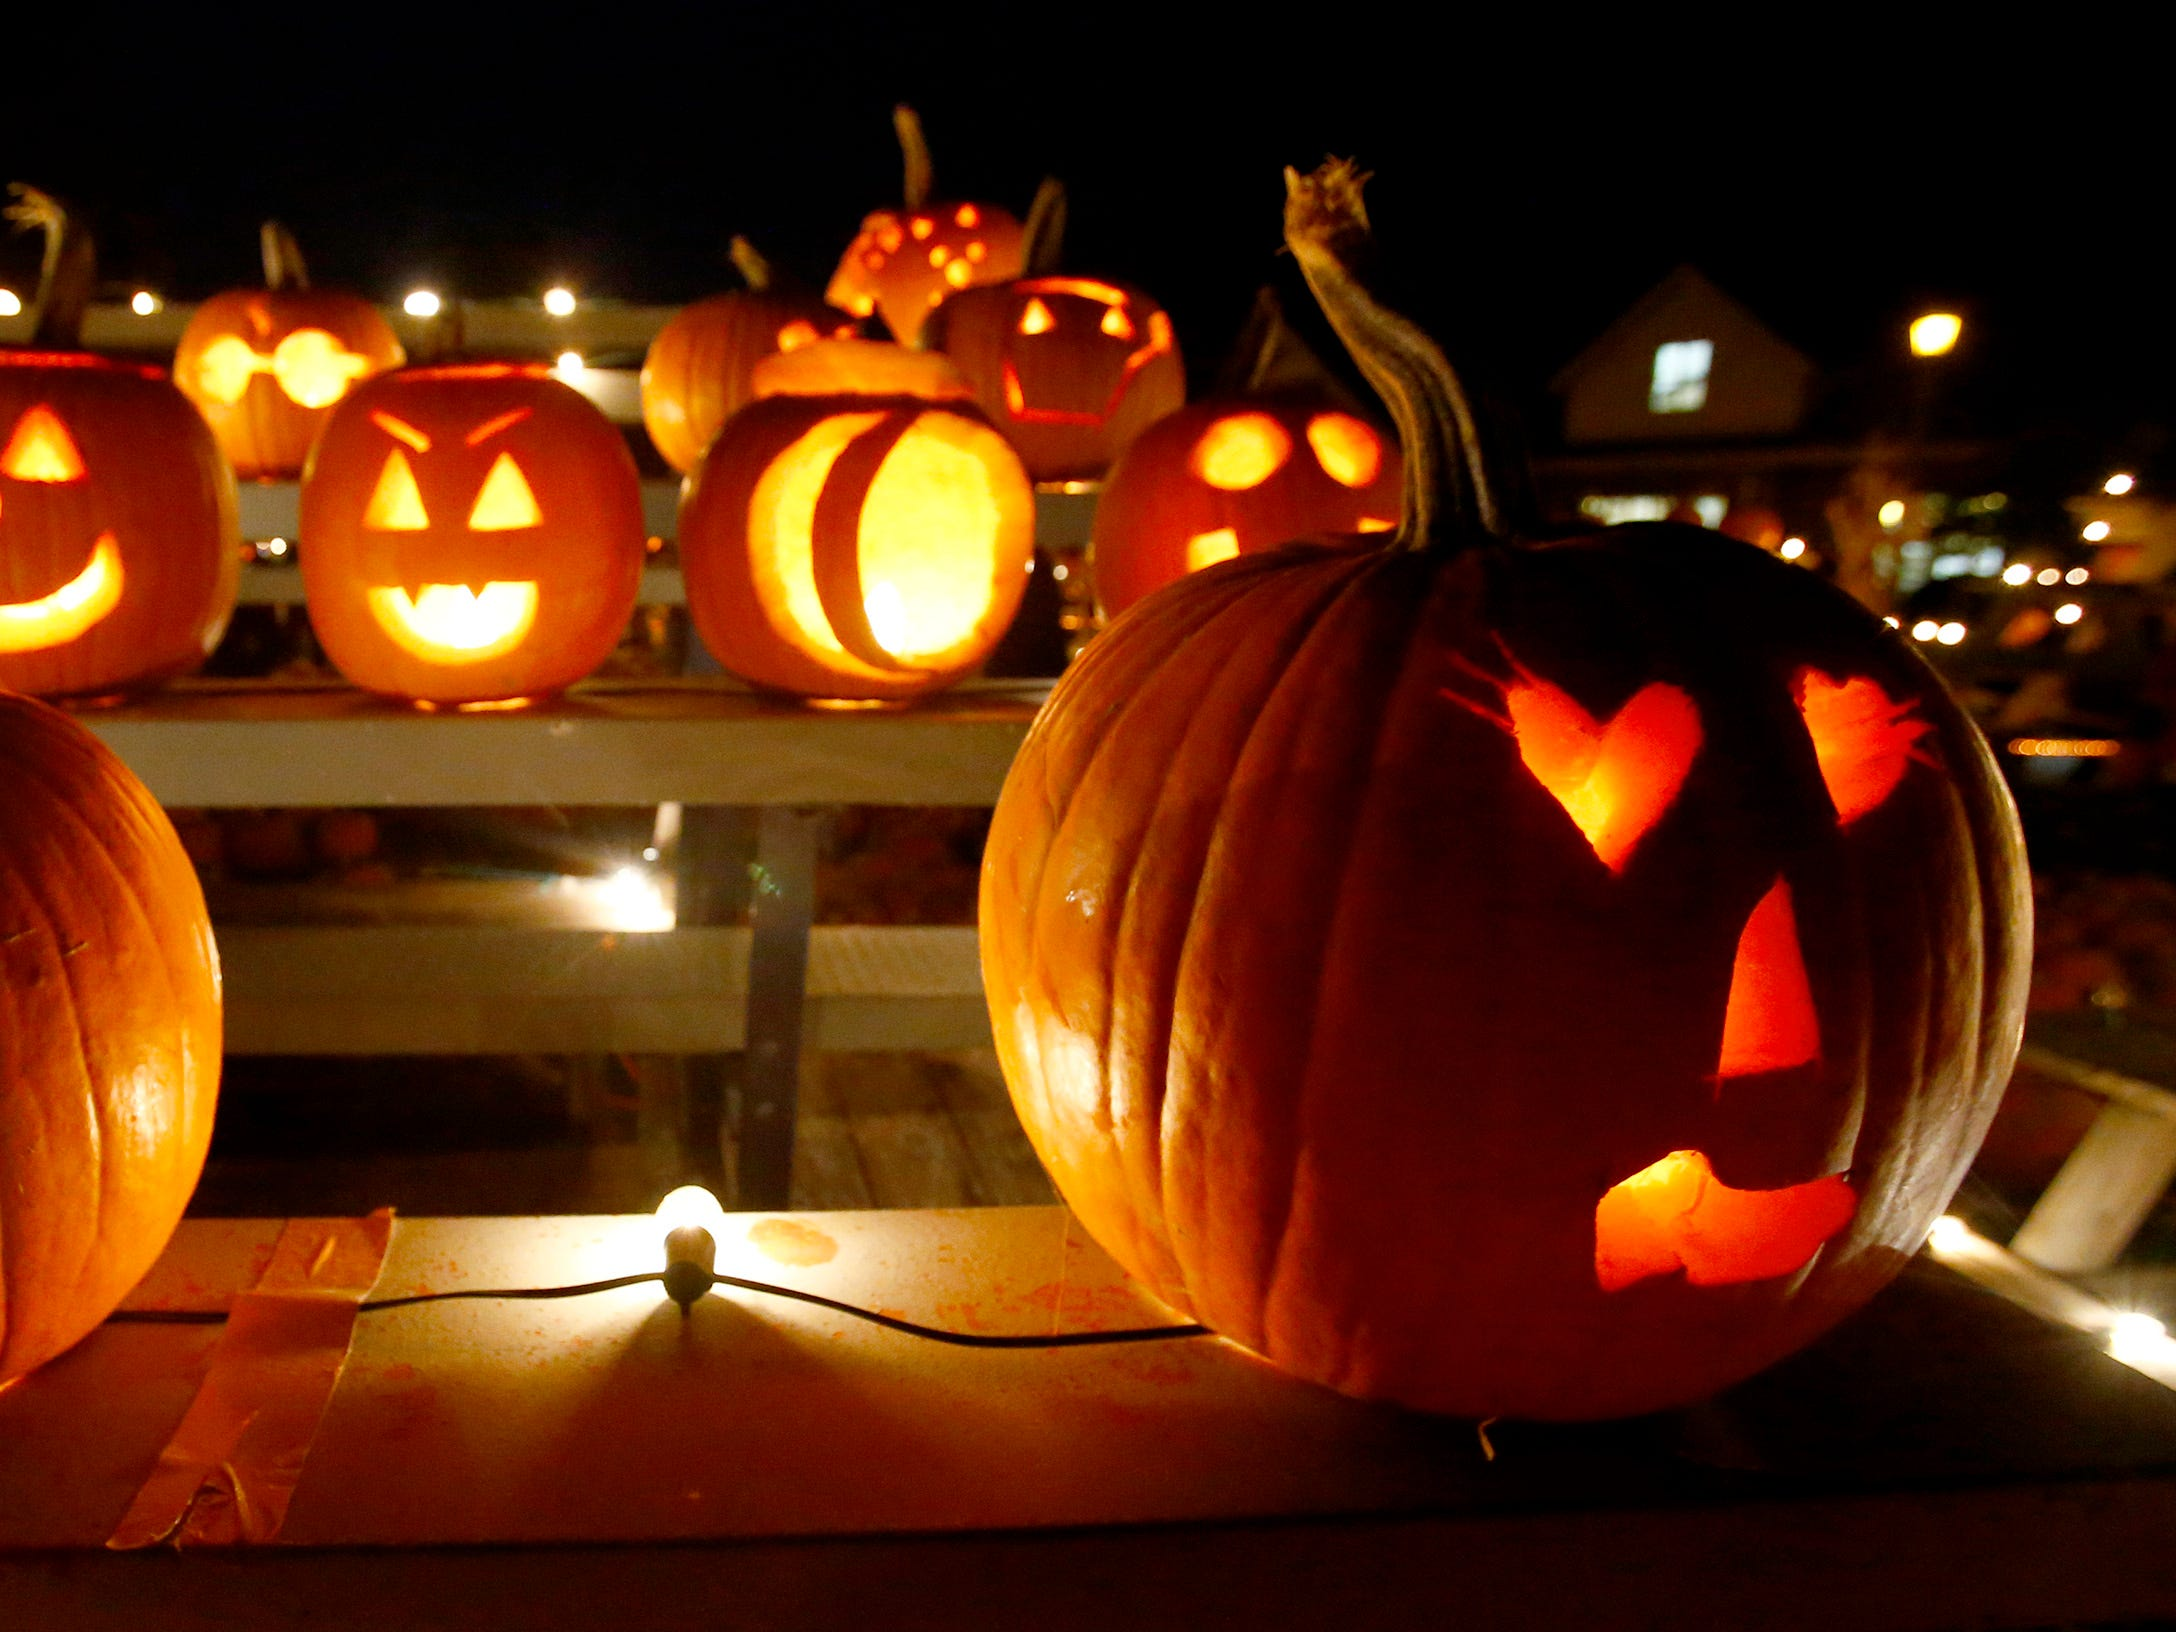 Pumpkins are on display at the 32nd annual Whitefish Bay Great Pumpkin Festival at Old Schoolhouse Park, hosted by the Whitefish Bay Civic Foundation, on Oct. 25. The festival runs from 6 to 9 p.m. Wednesday, Oct. 24, through Sunday, Oct. 28.